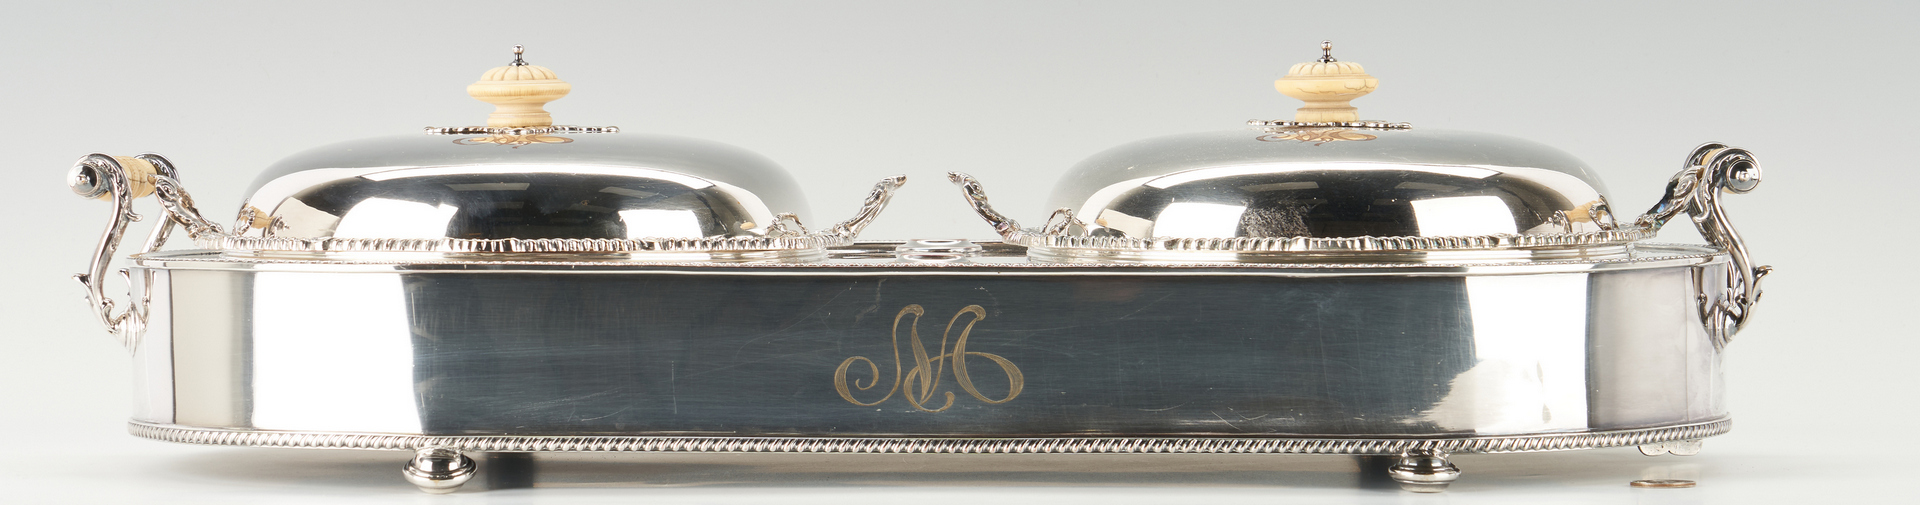 Lot 955: Double Supper Server or Entree Dish